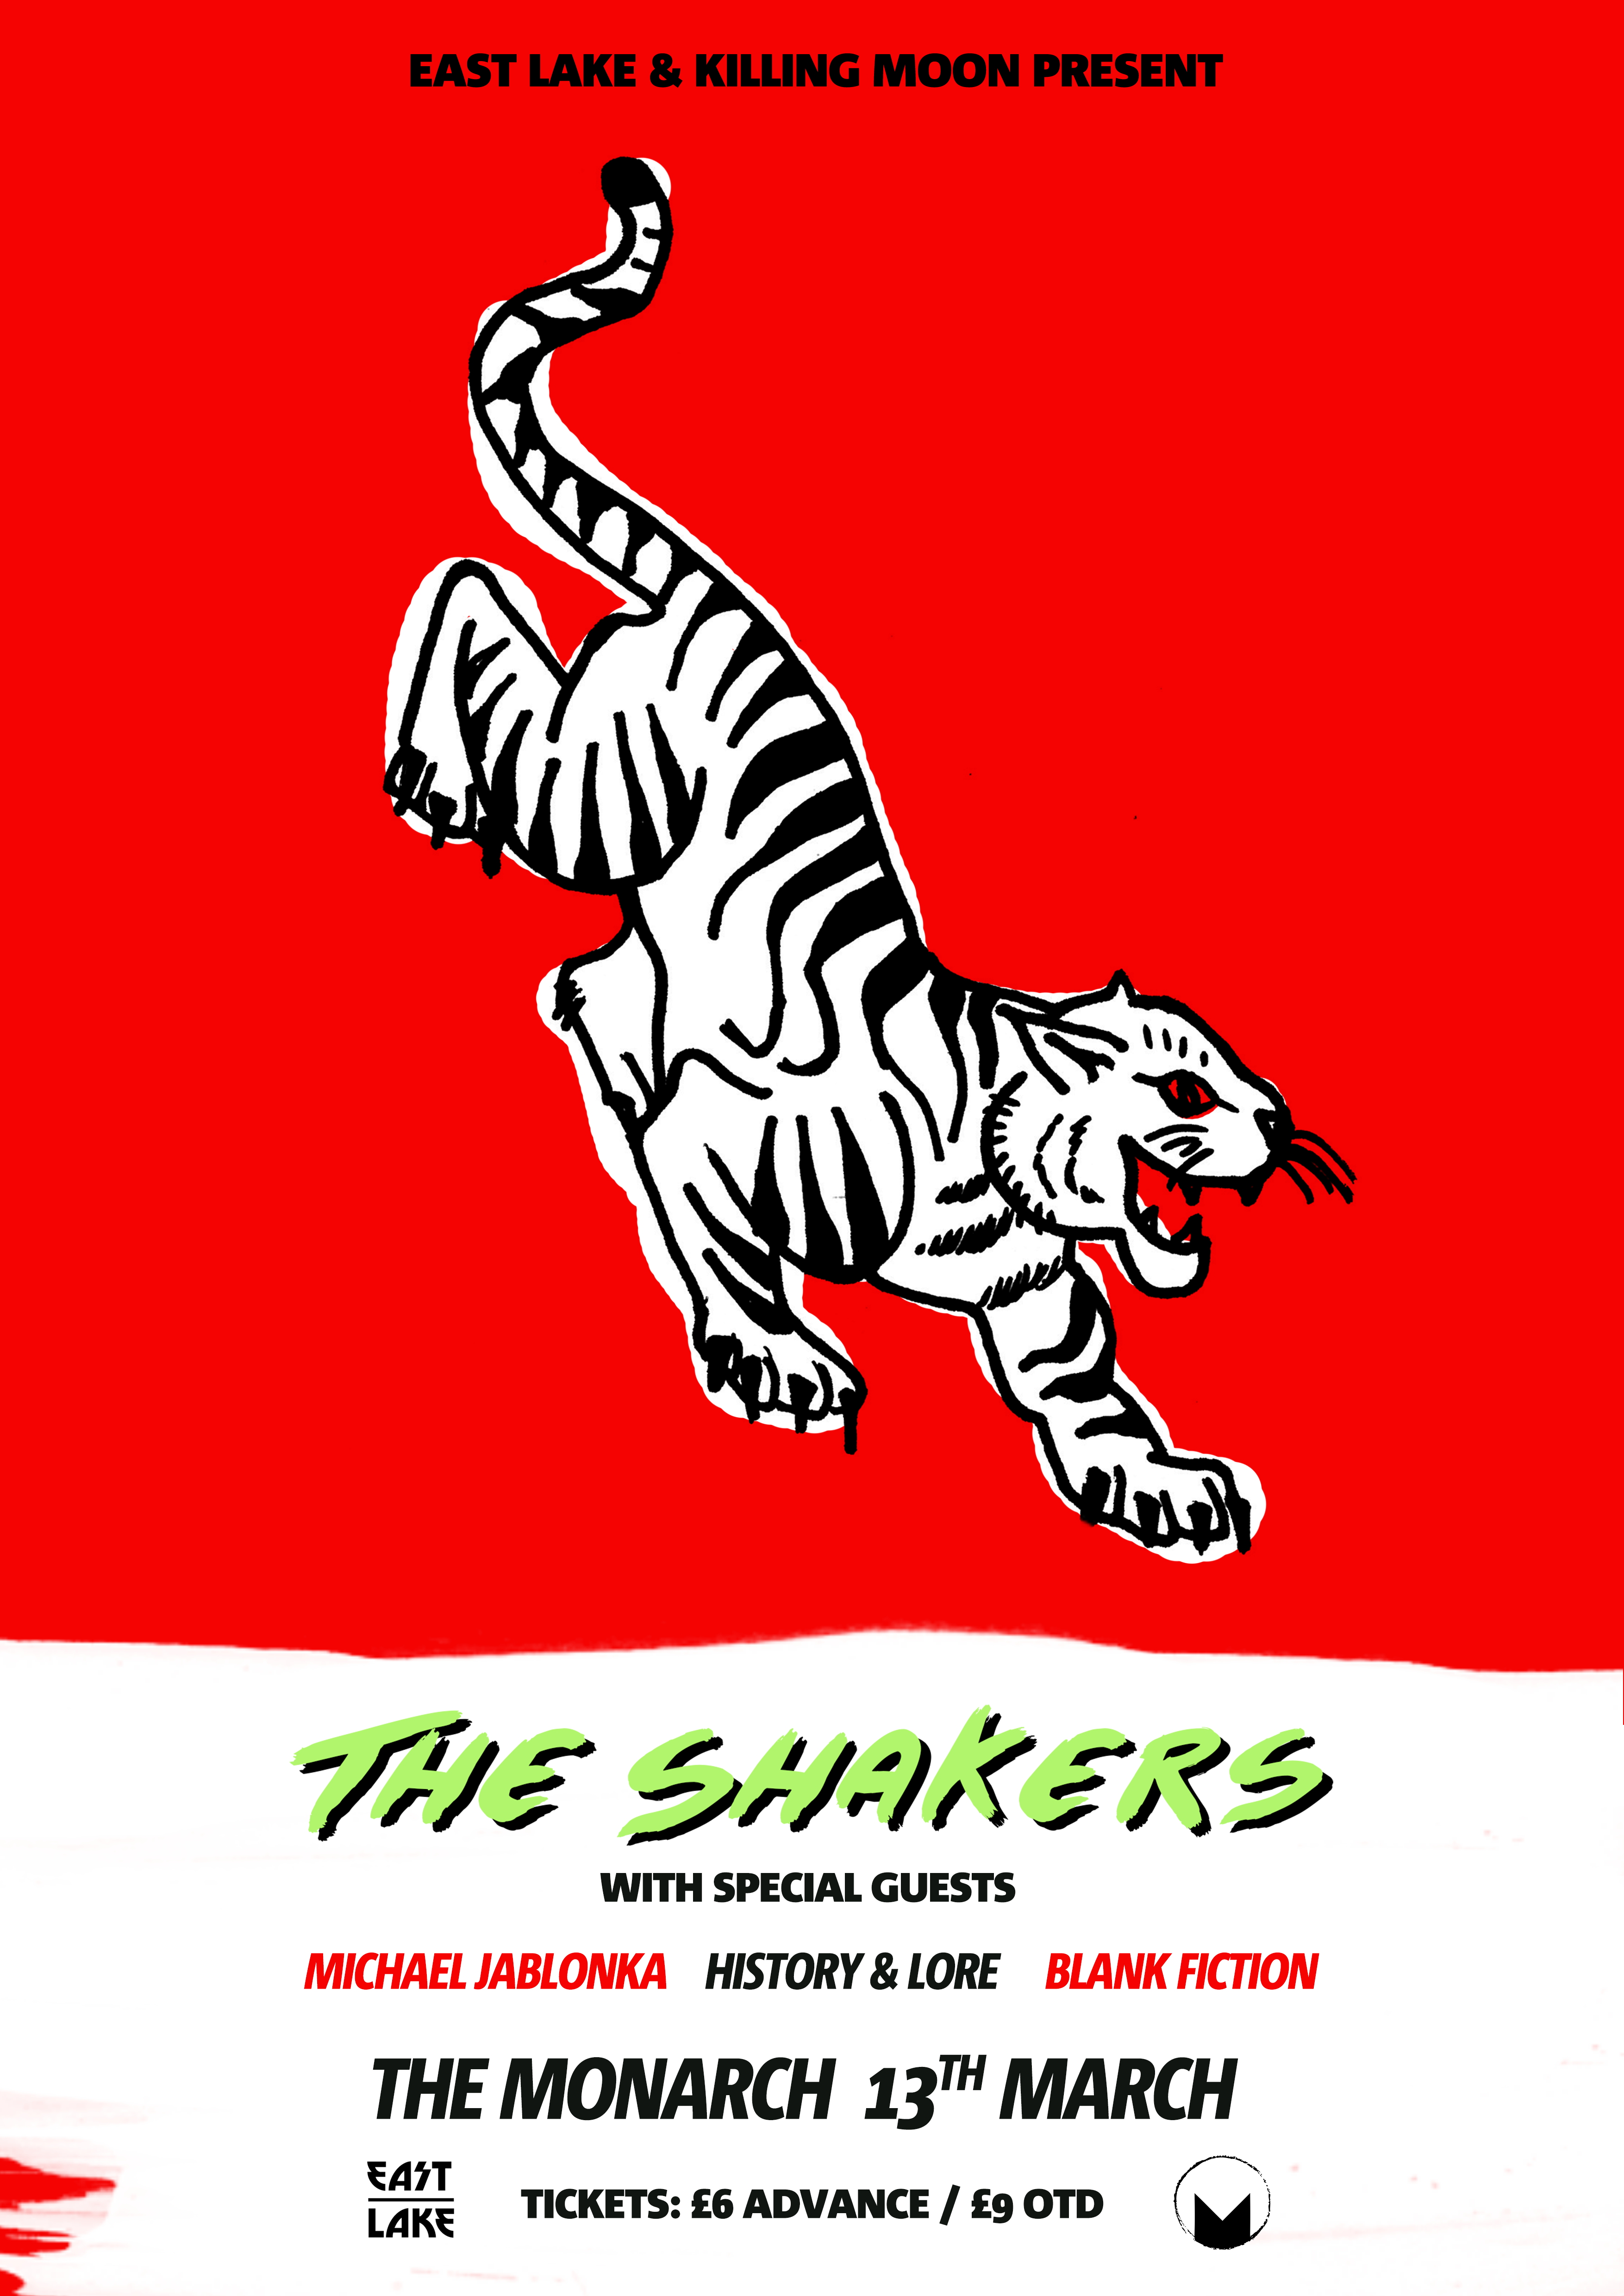 The Shakers - The Monarch (Poster)